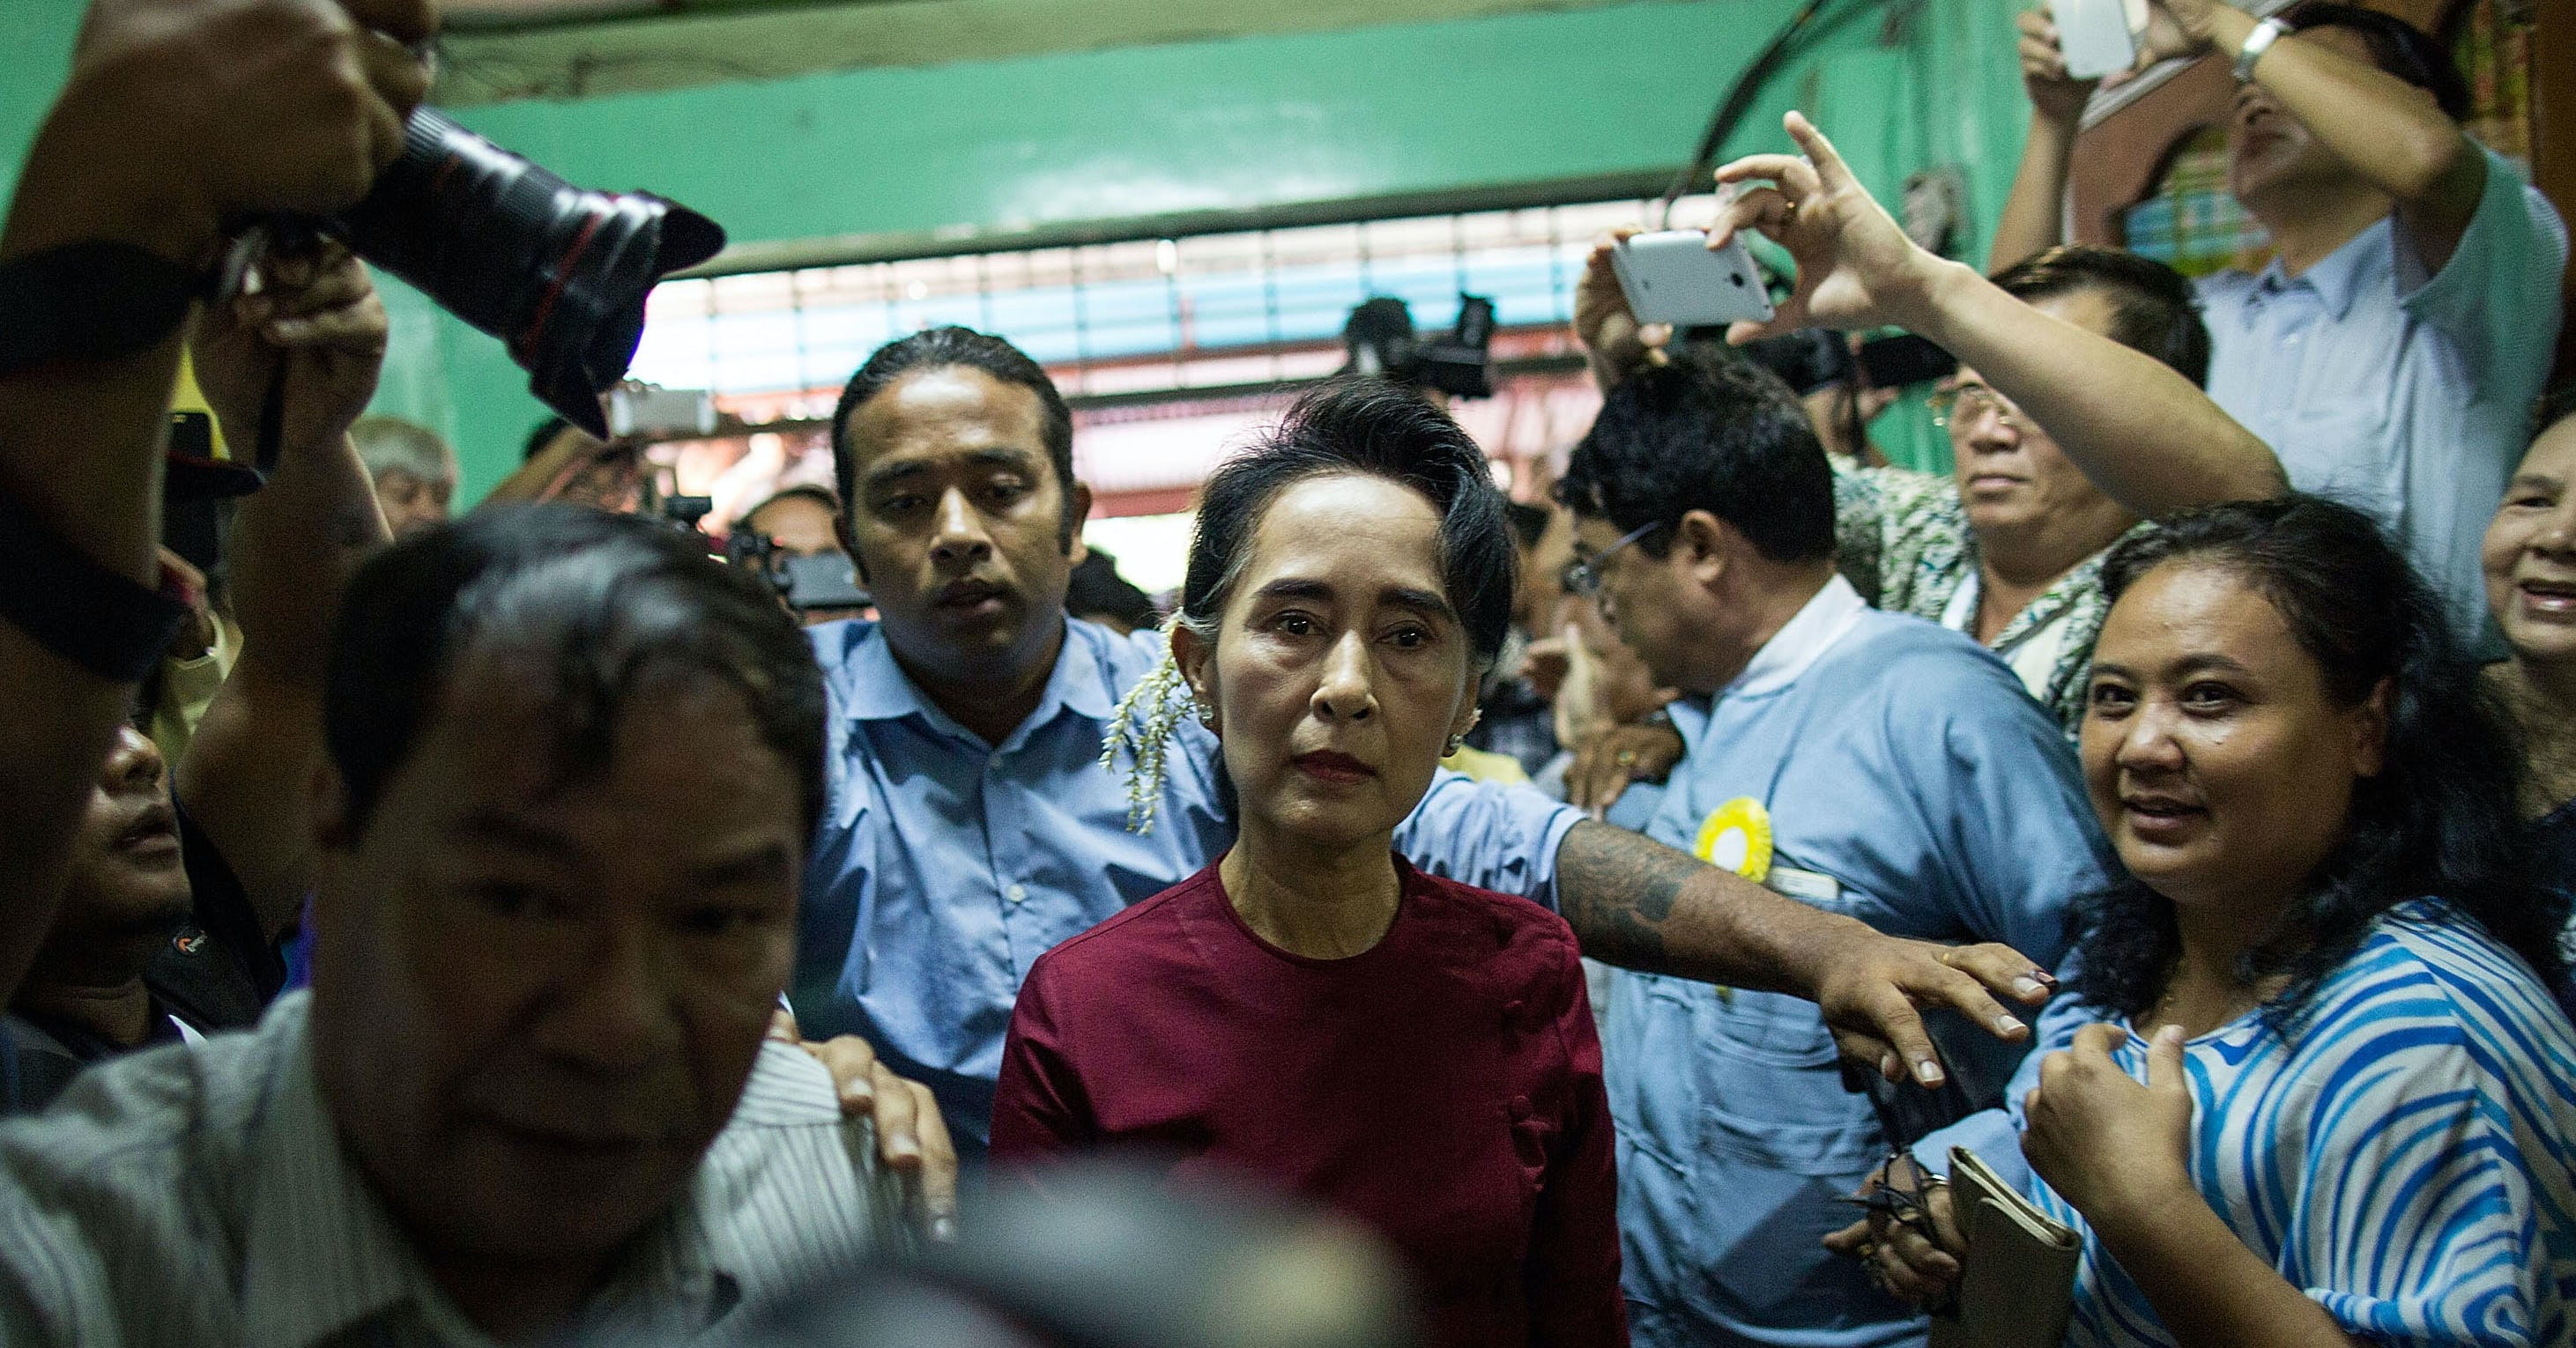 Burmese Nobel Prize Winner Aung San Suu Kyi Has Turned Into an Apologist for Genocide Against Muslims